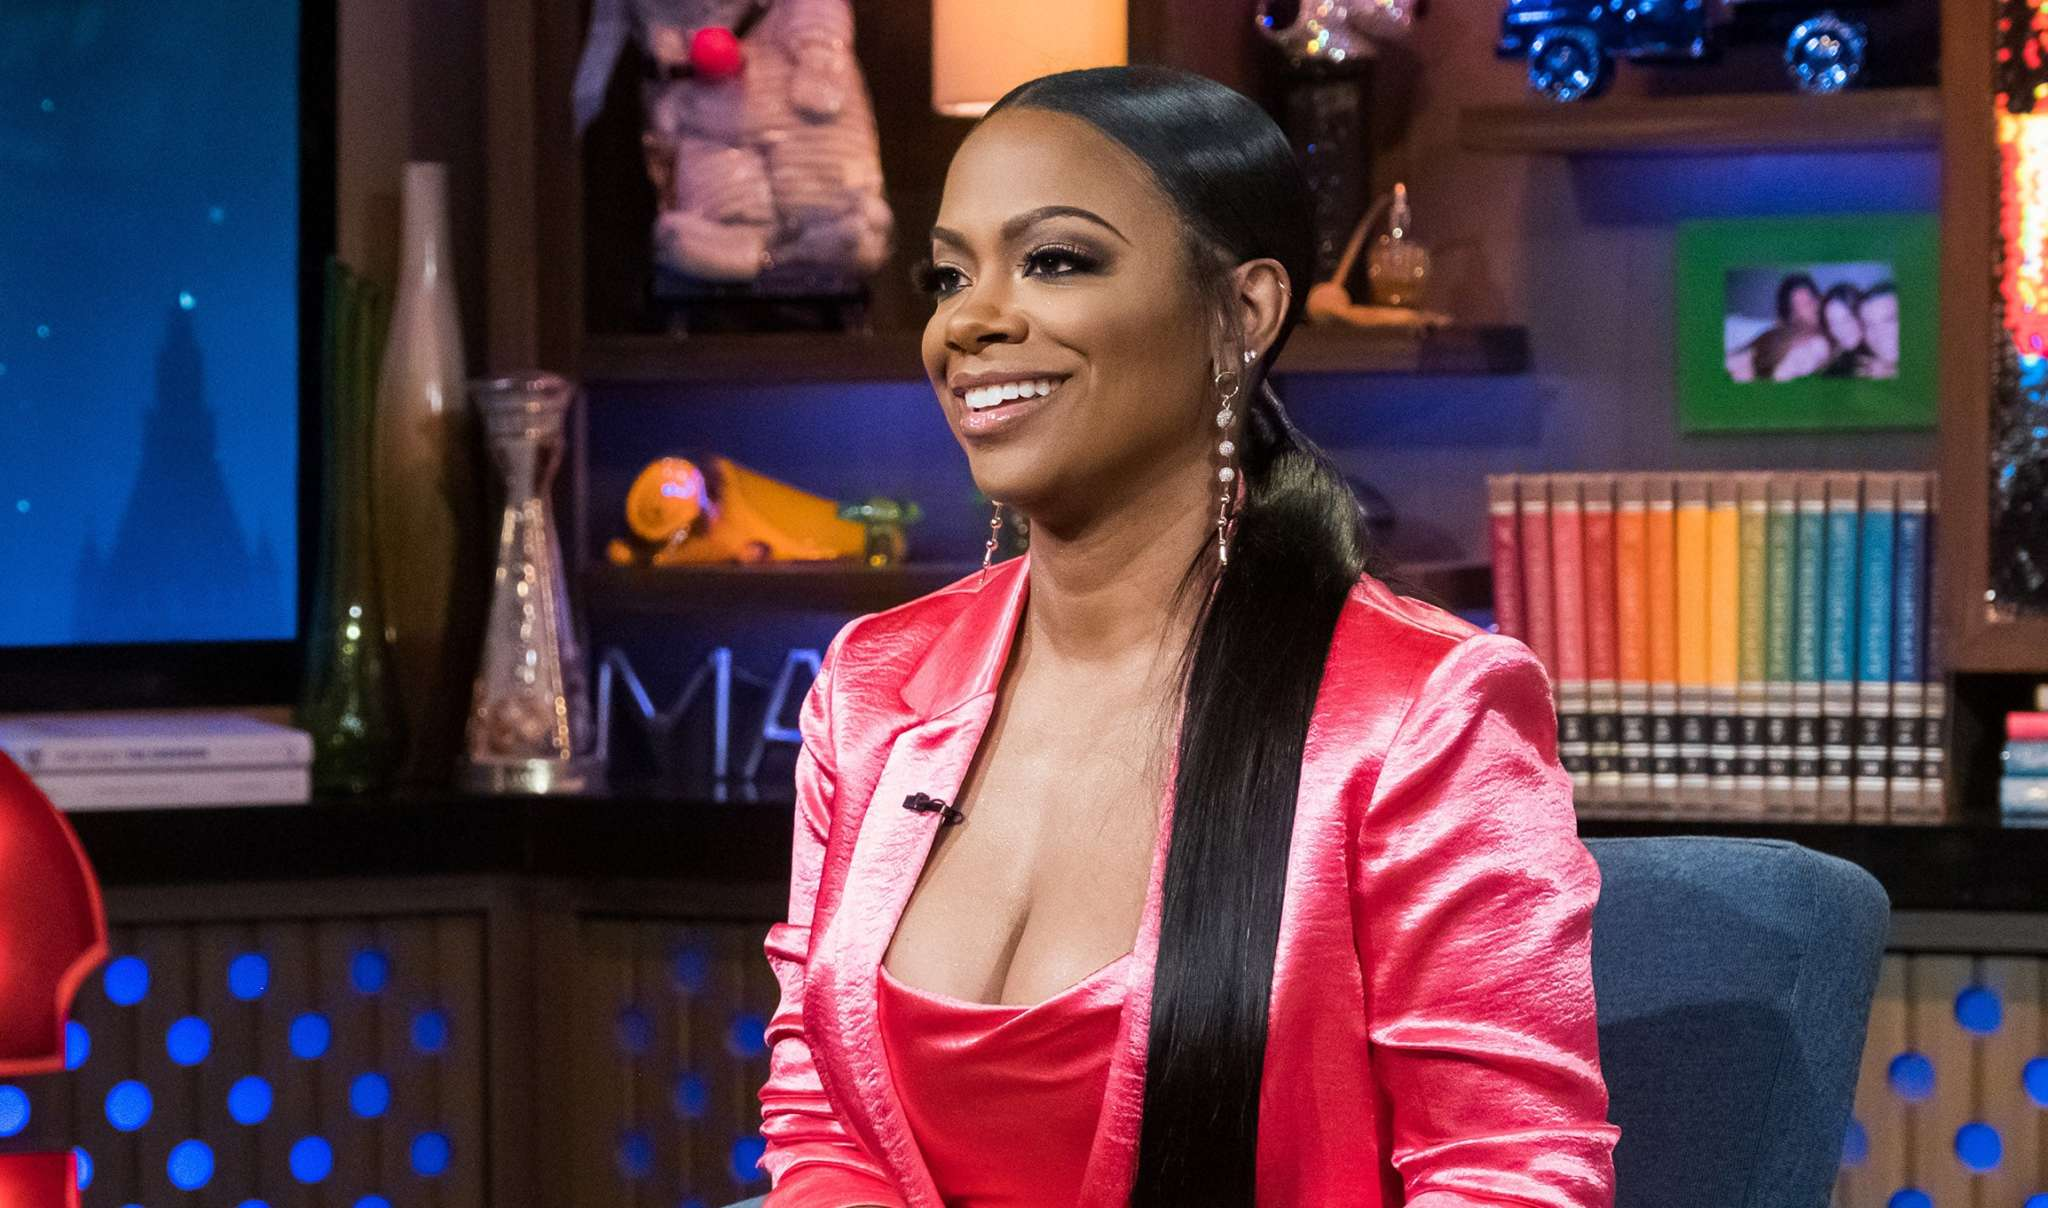 Kandi Burruss Wishes A Happy Birthday To Her Cousin – Check Out Their Photo Together